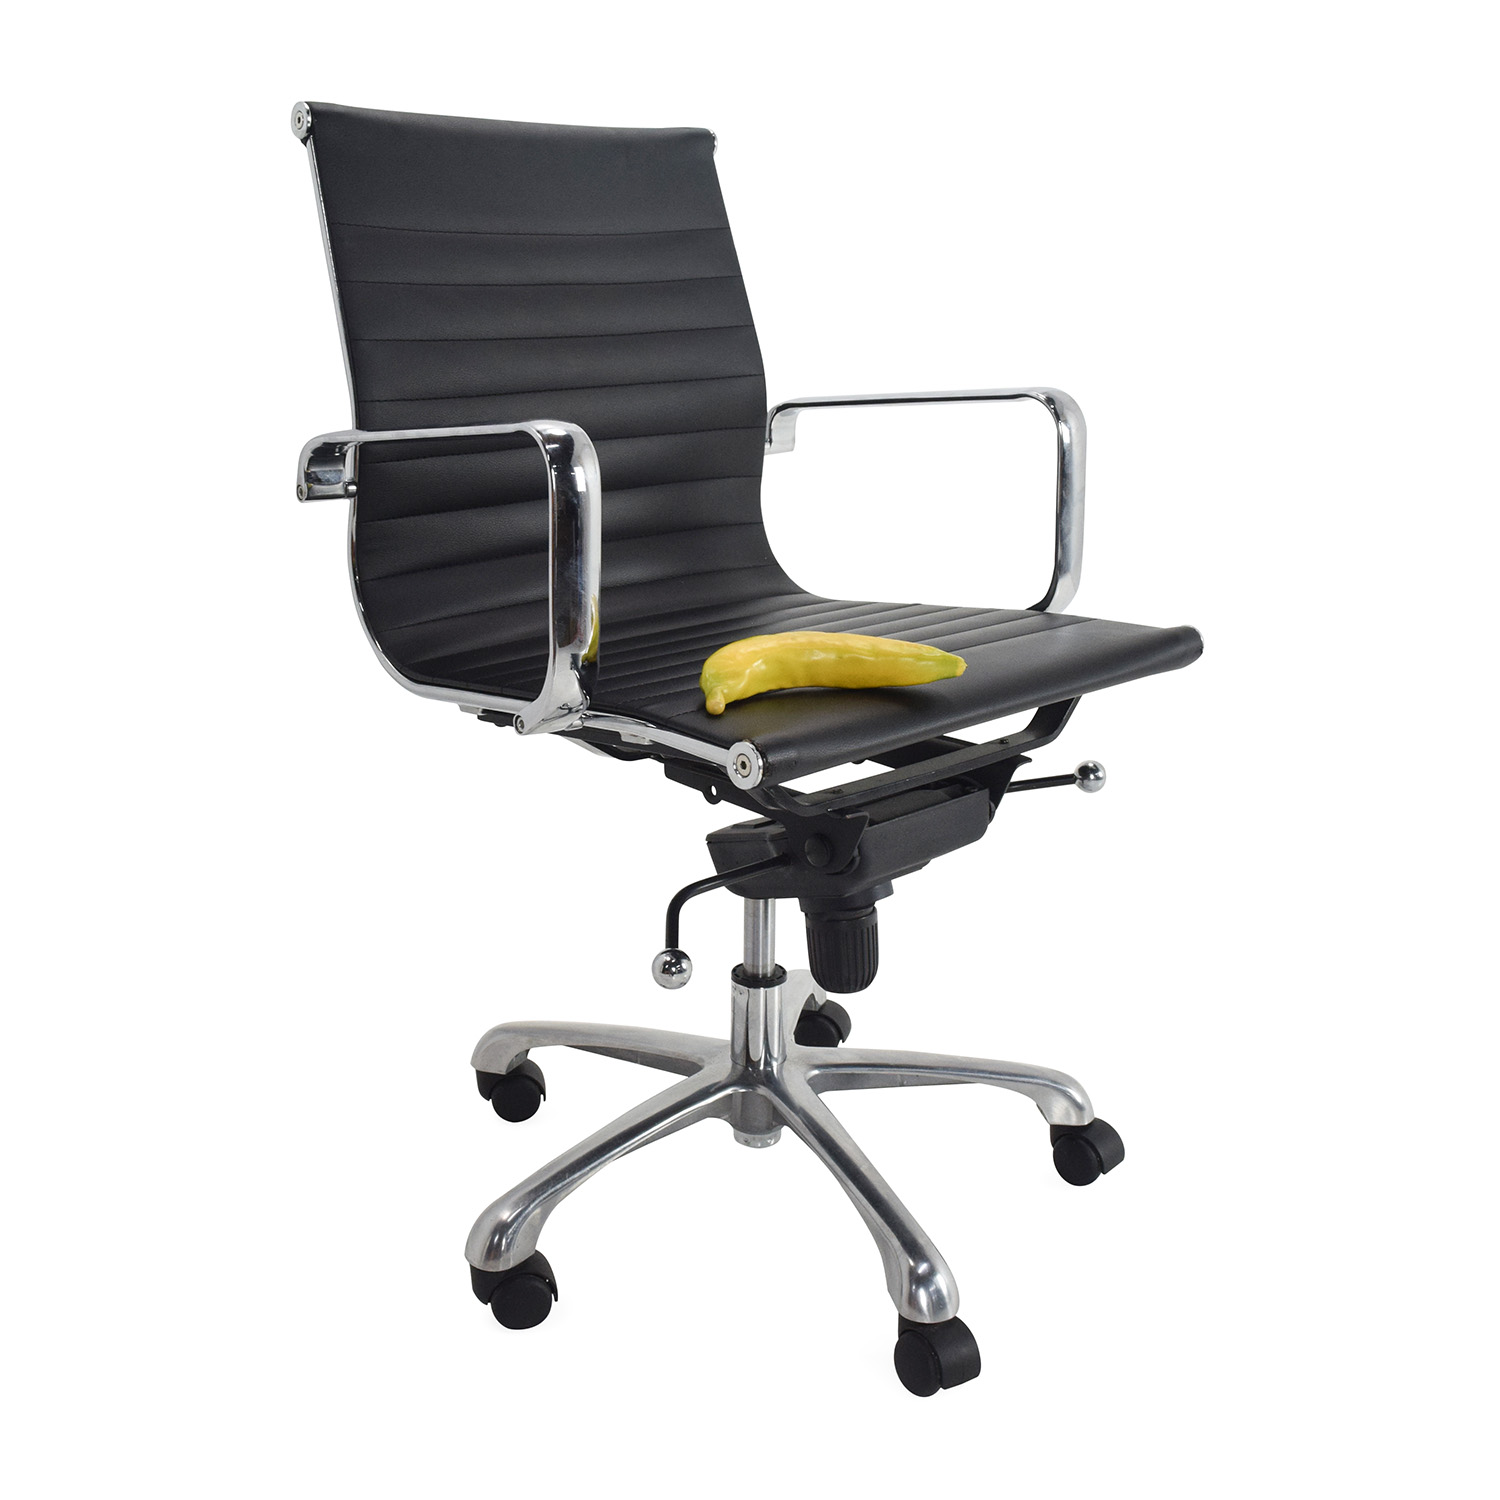 84 off meelano eames style office chair chairs - Eames office chair original ...